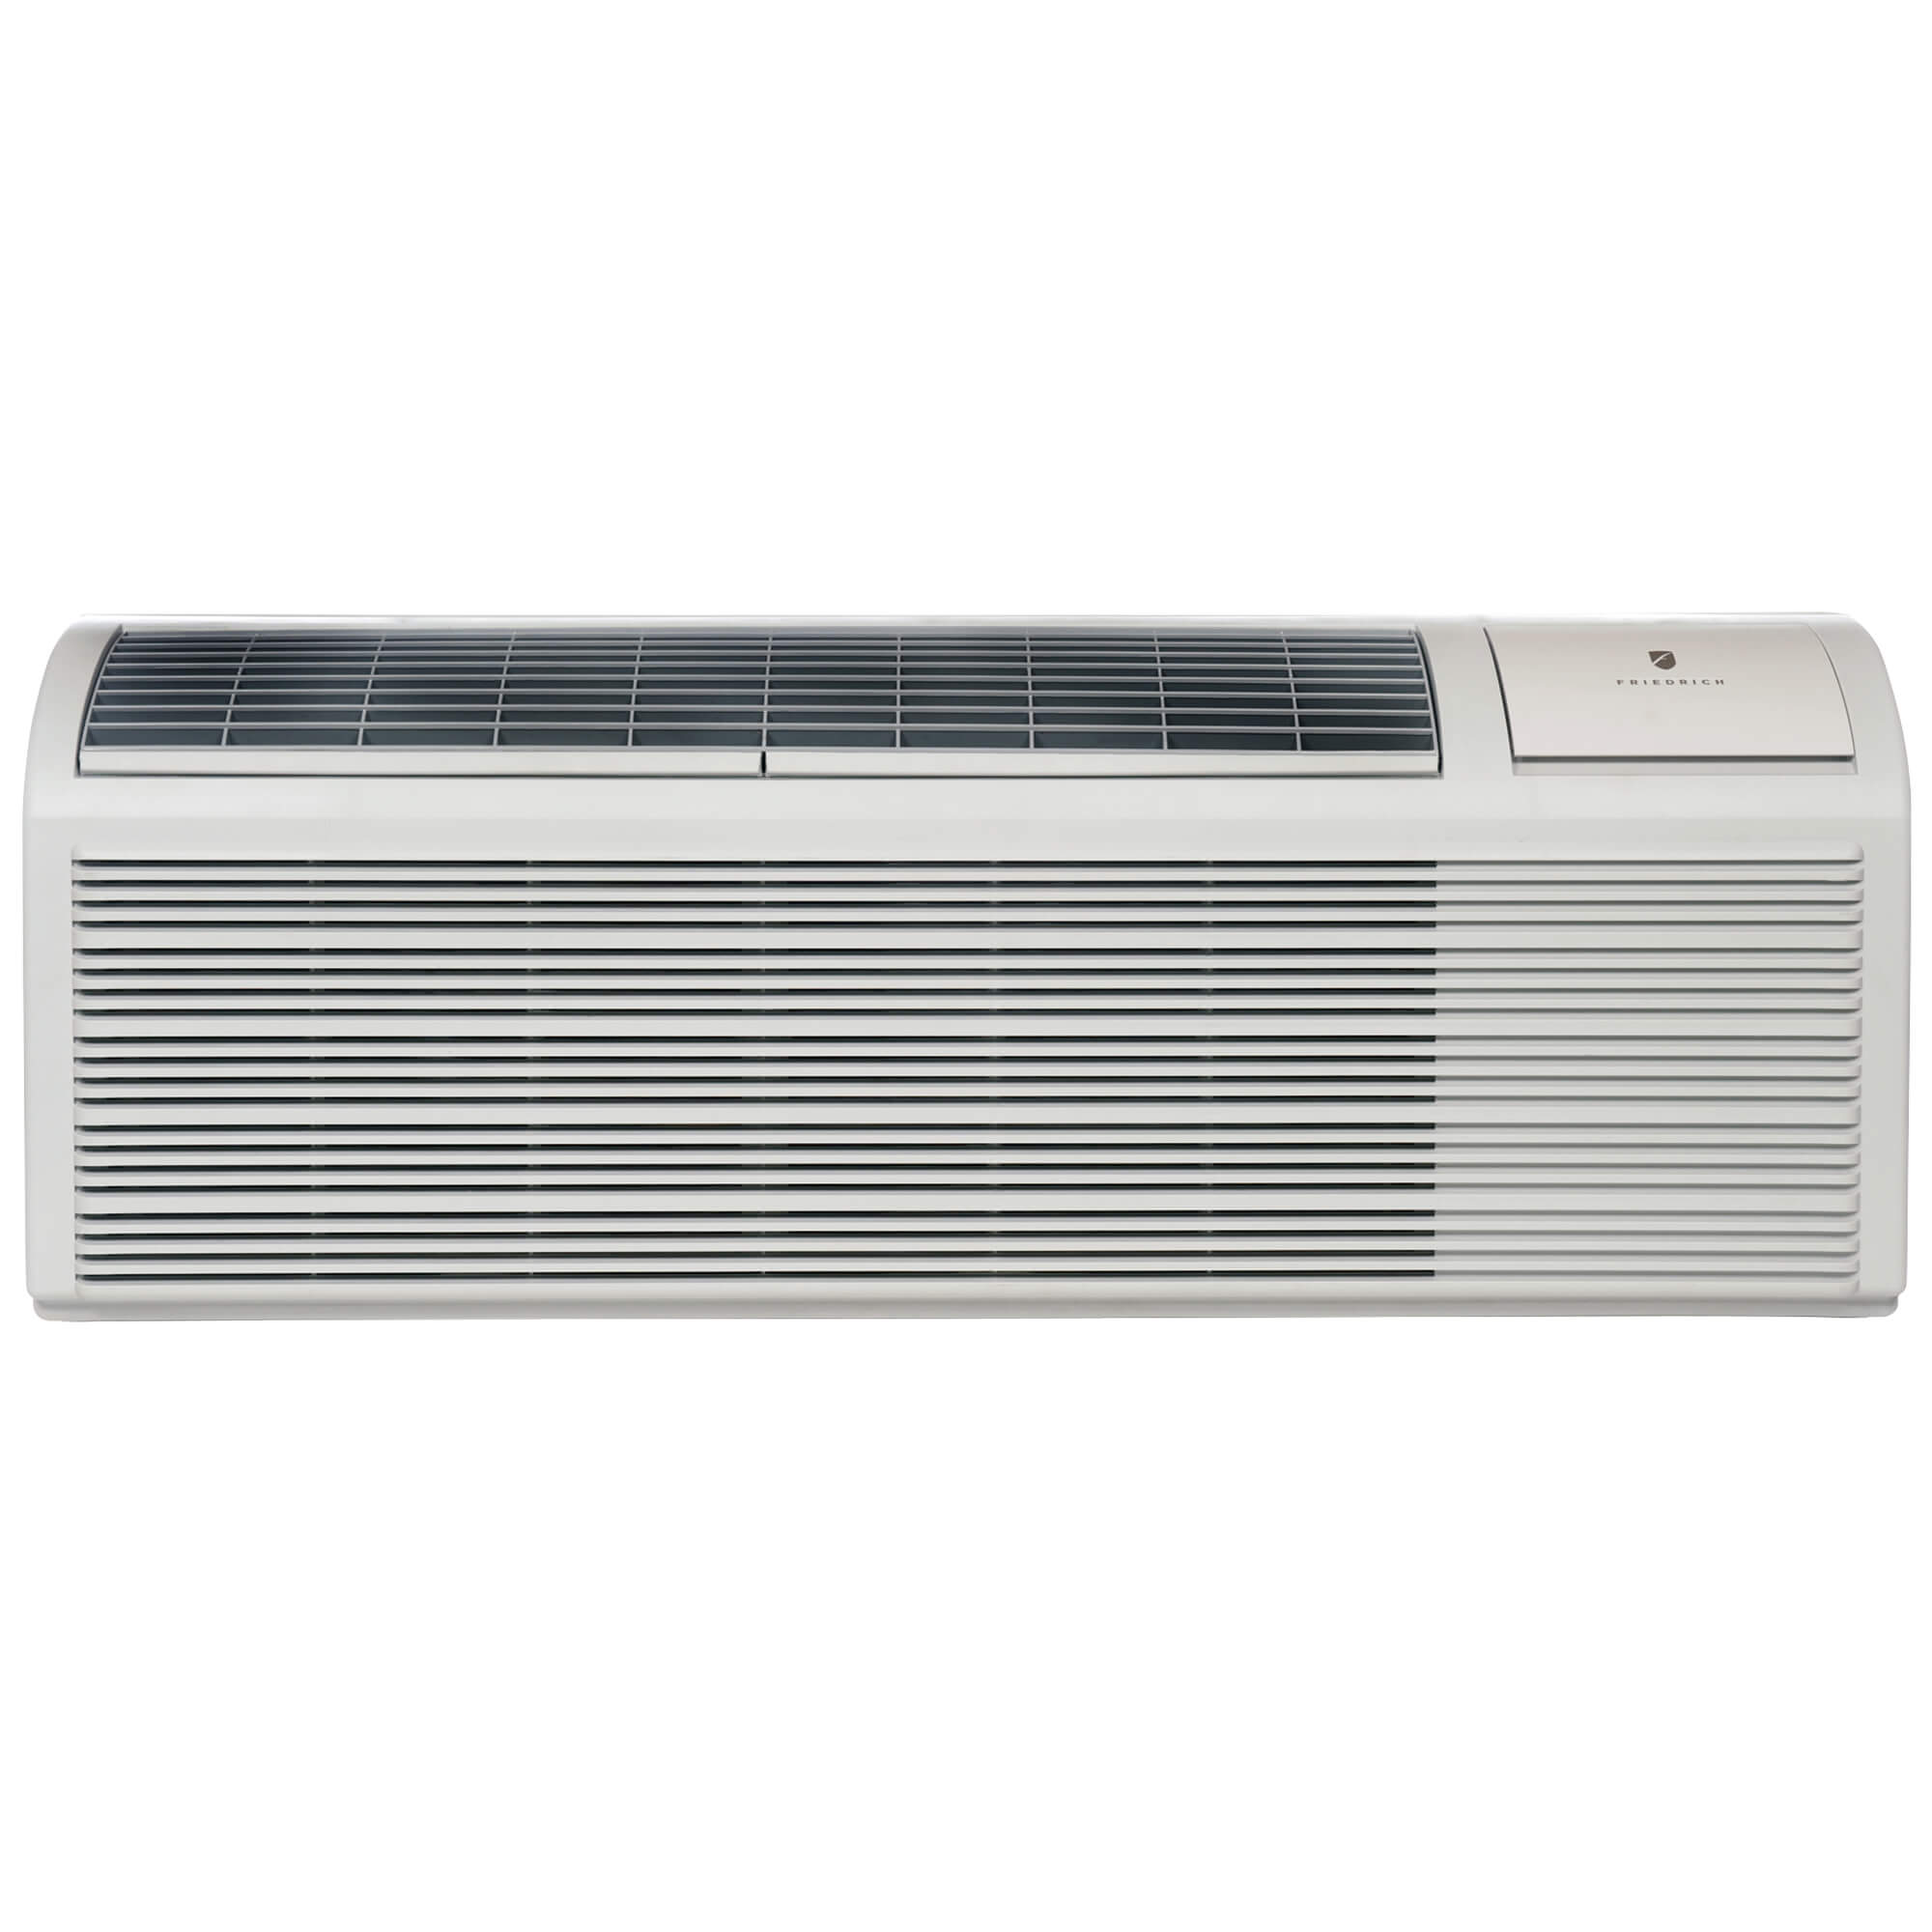 ZoneAire® Premier Package Terminal Air Conditioner